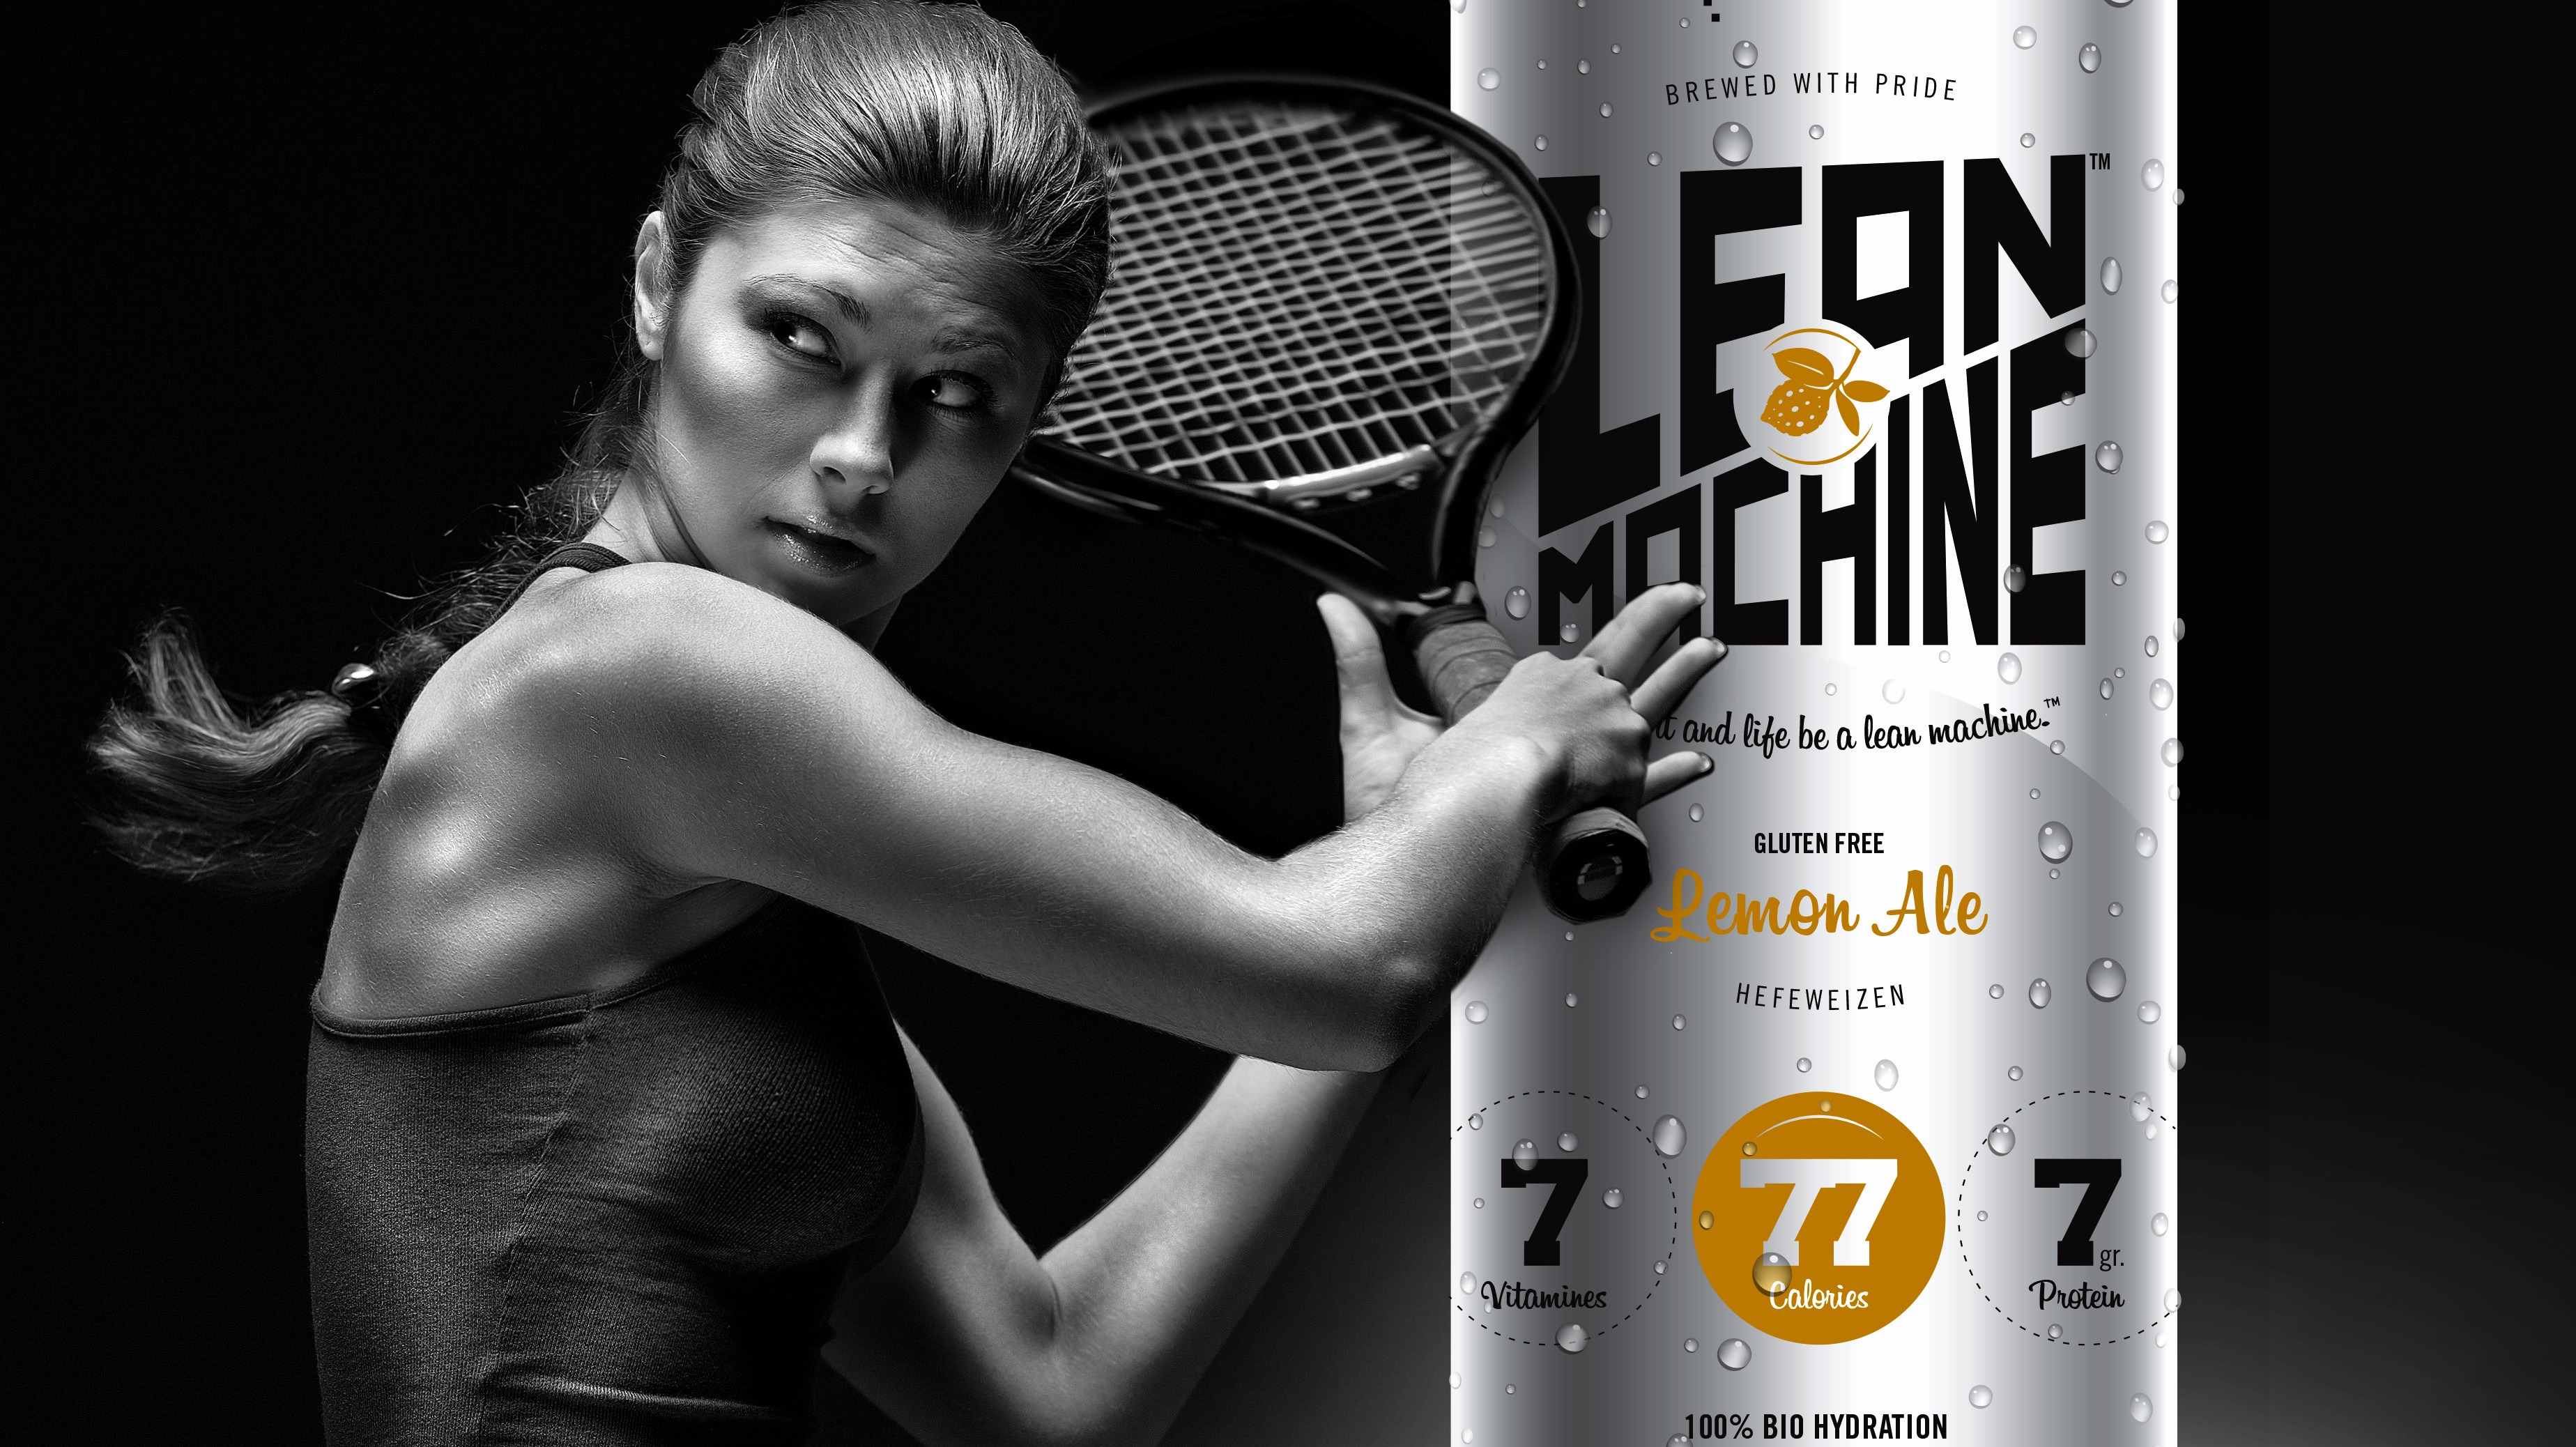 Beer As A Post-Workout Recovery Drink? Not As Crazy As It Sounds